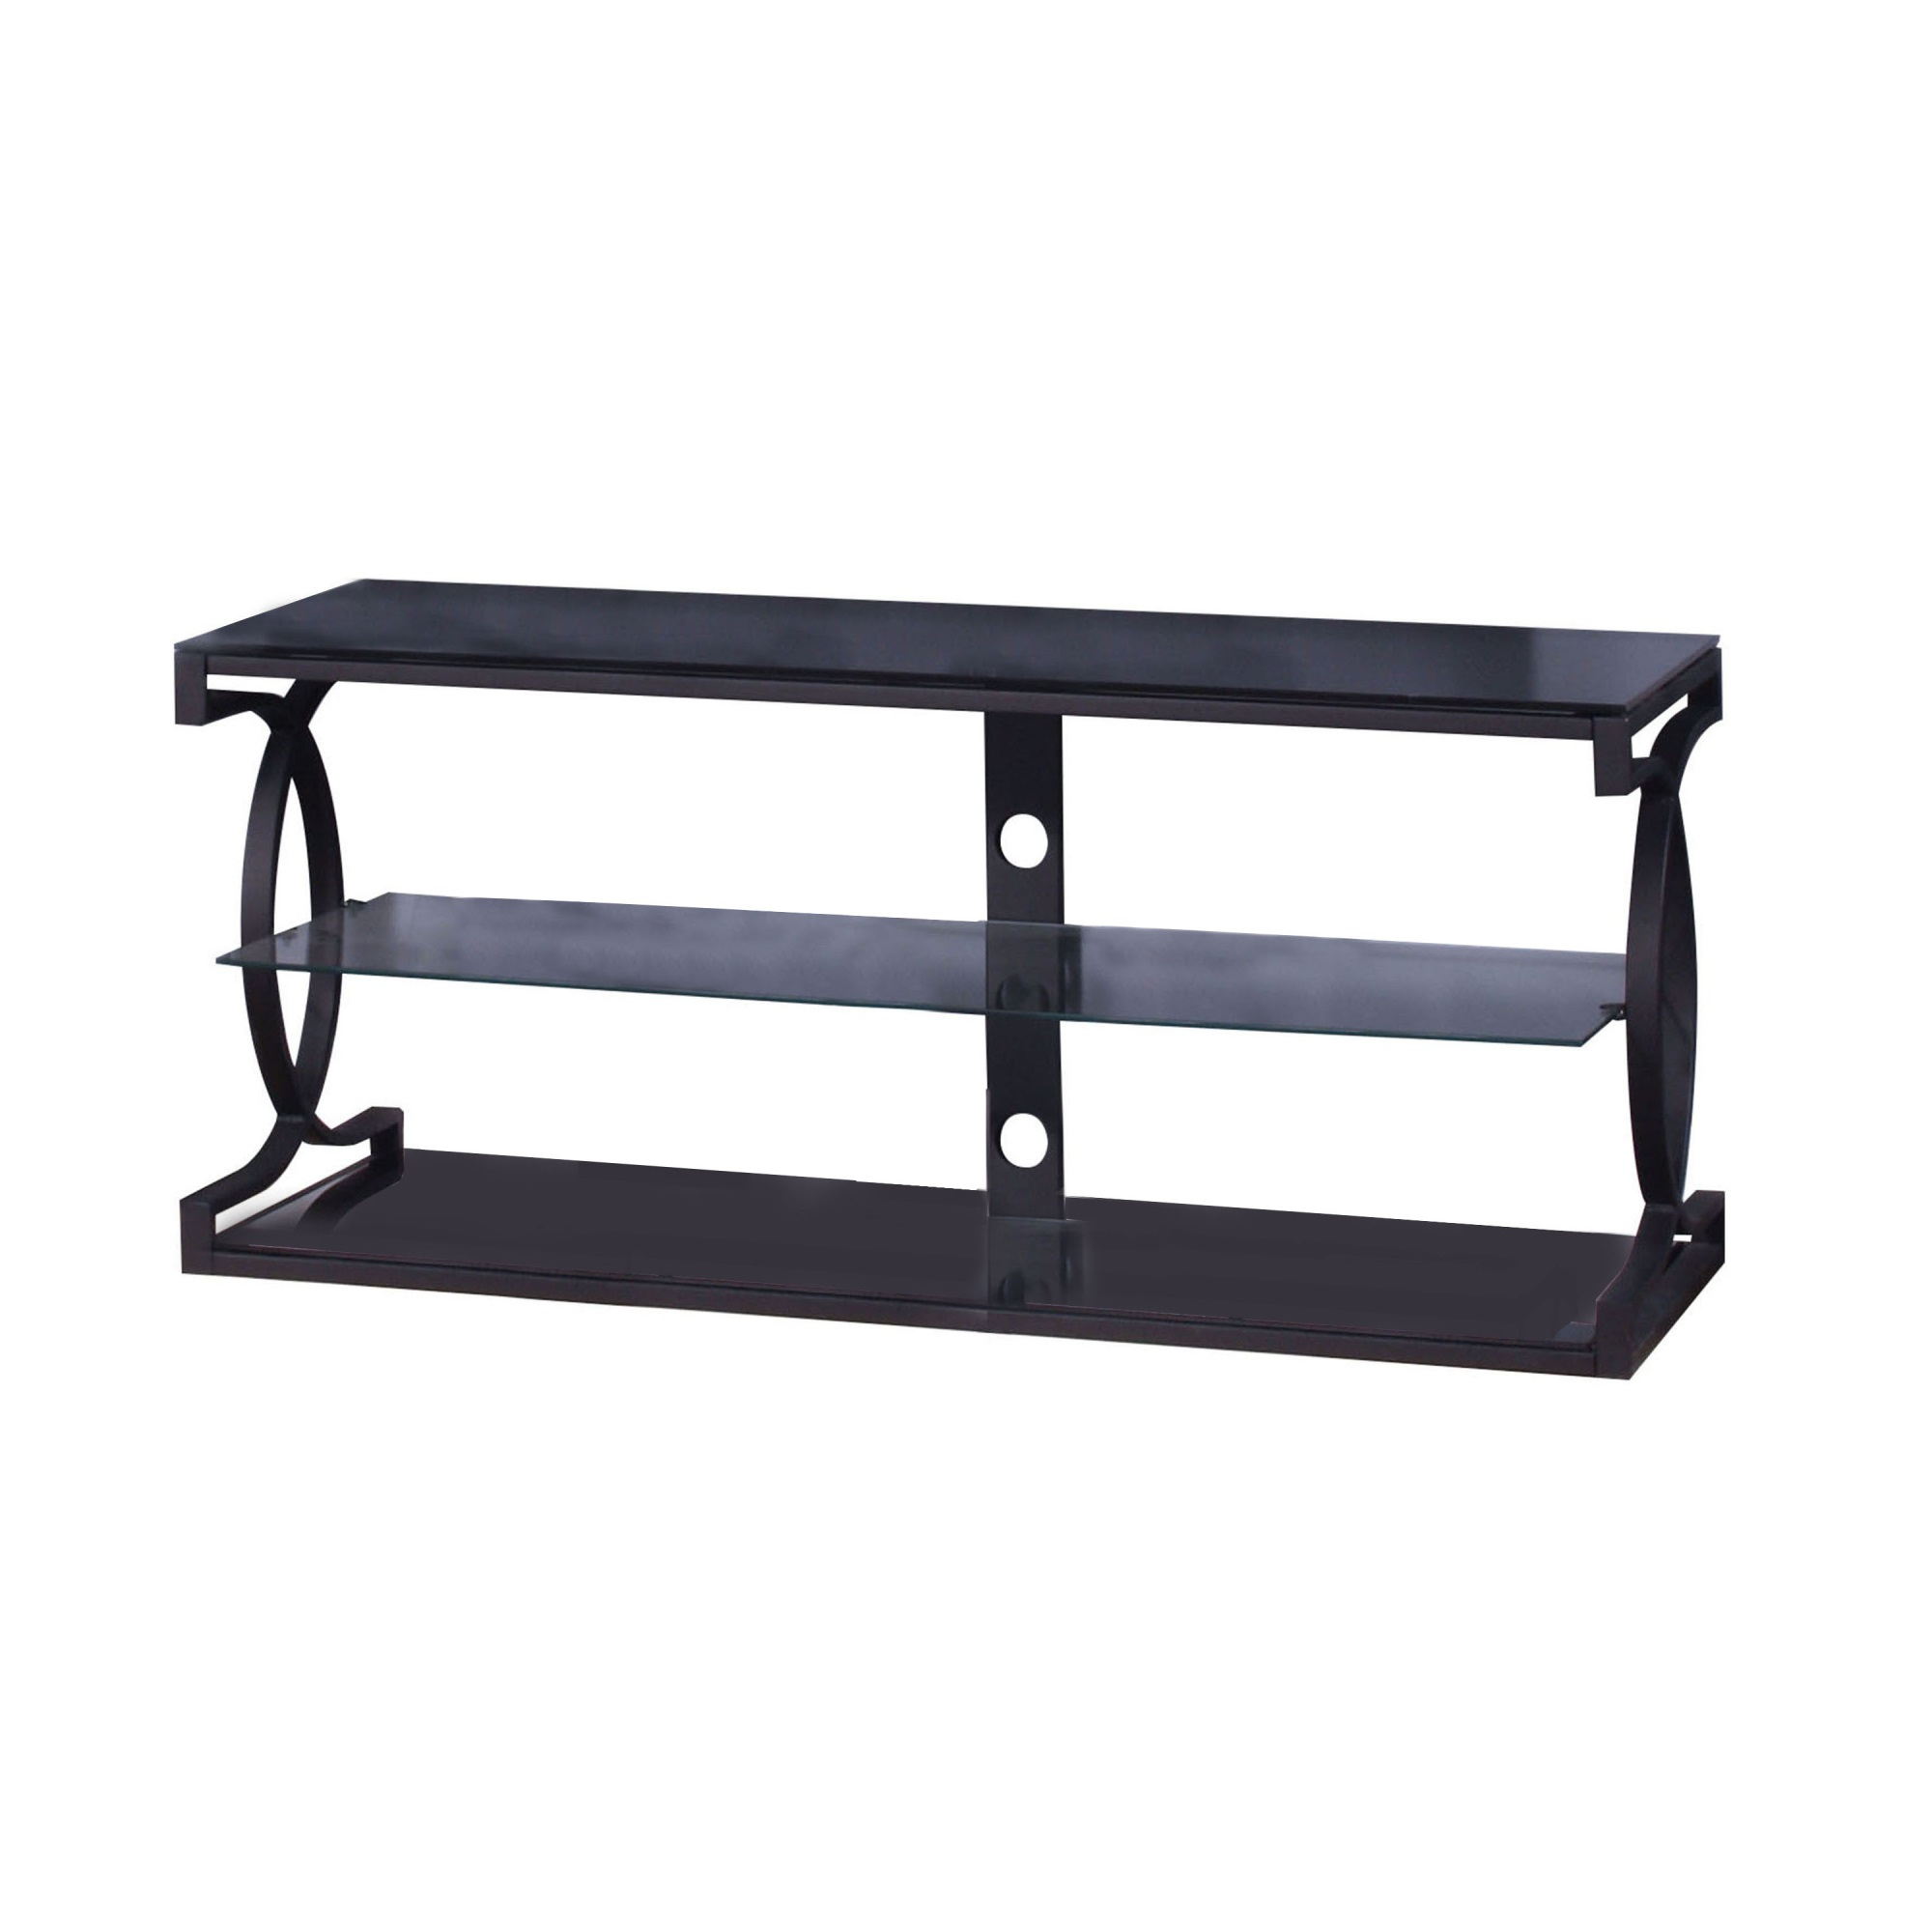 Metal Tv Stand With 2 Glass Shelves And Interlocked Design Pertaining To Glass Shelves Tv Stands (View 14 of 20)